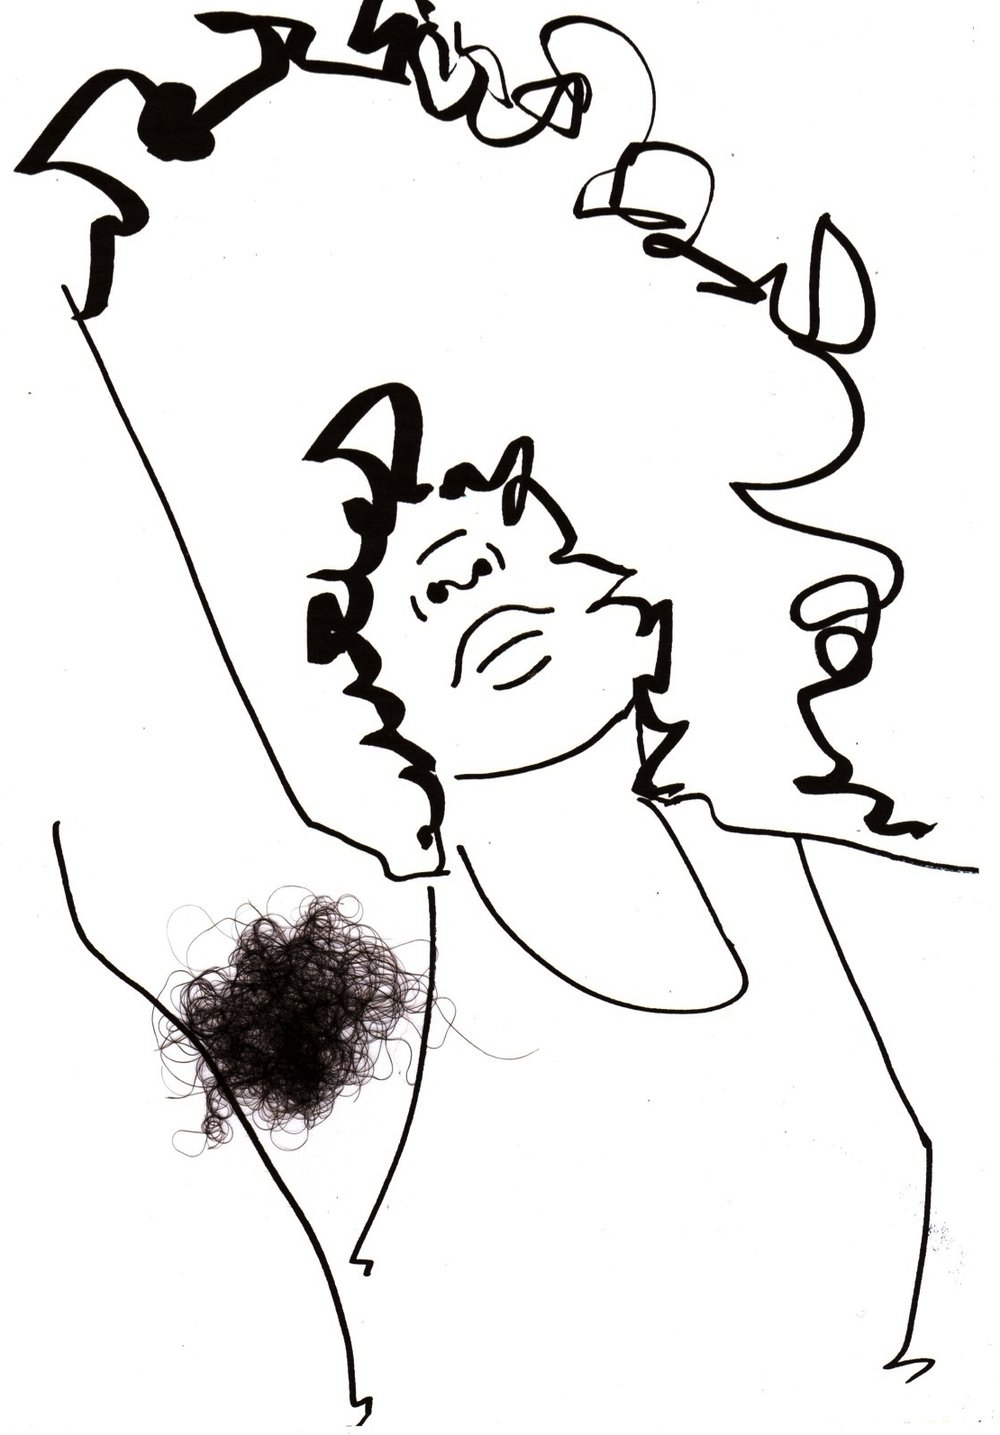 selfportrait_scan.jpg